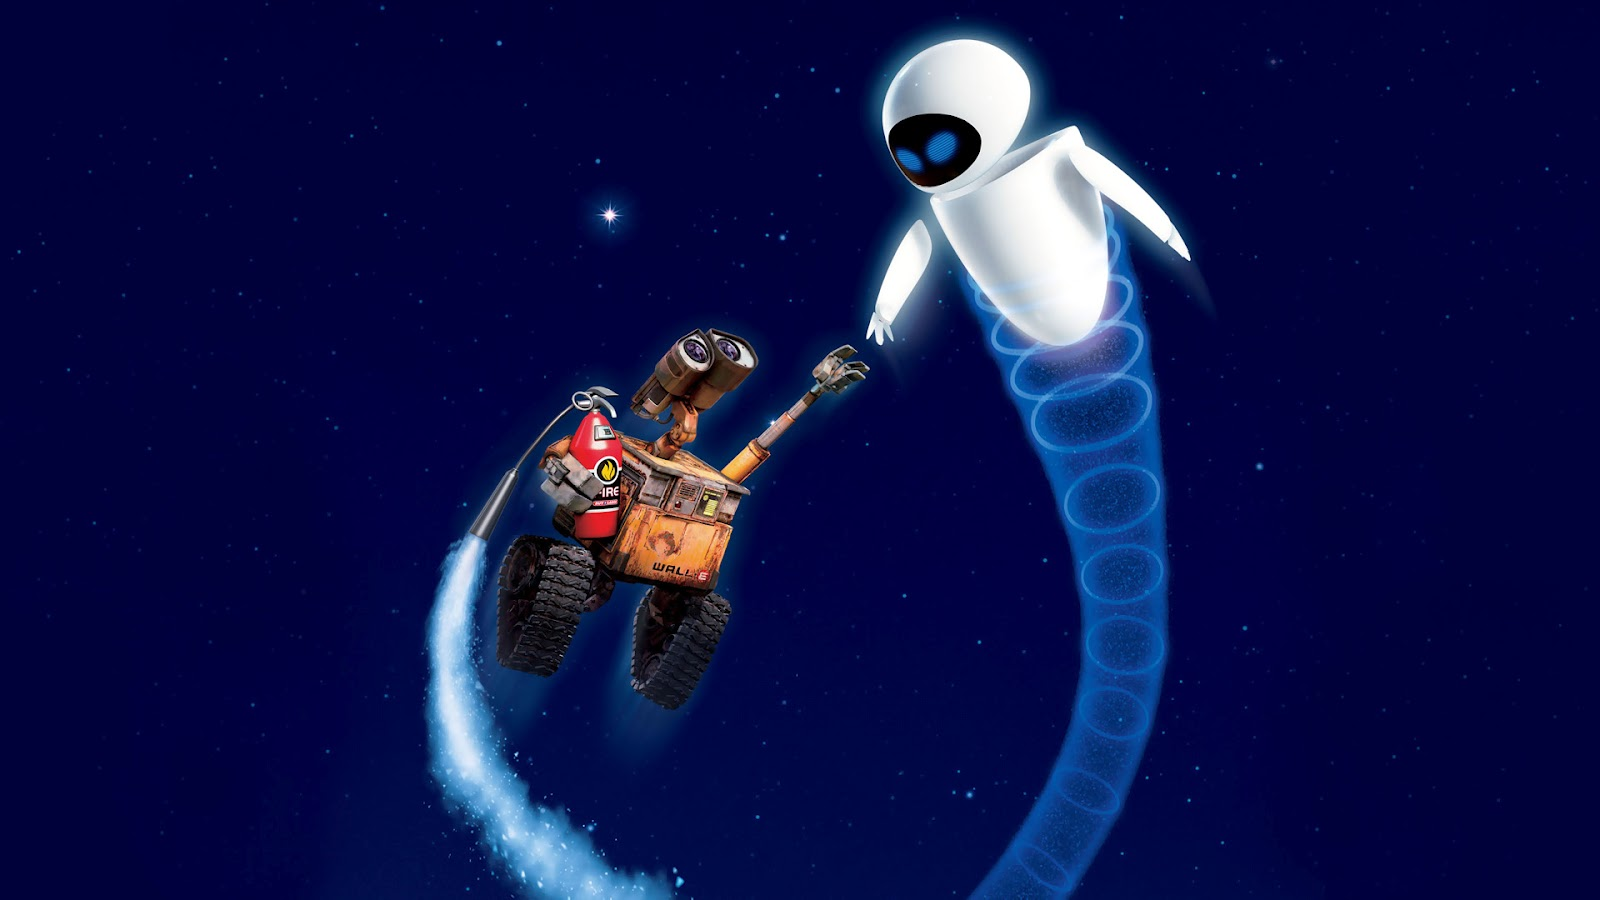 WALL-E | HD Wallpapers (High Definition) | Free Background